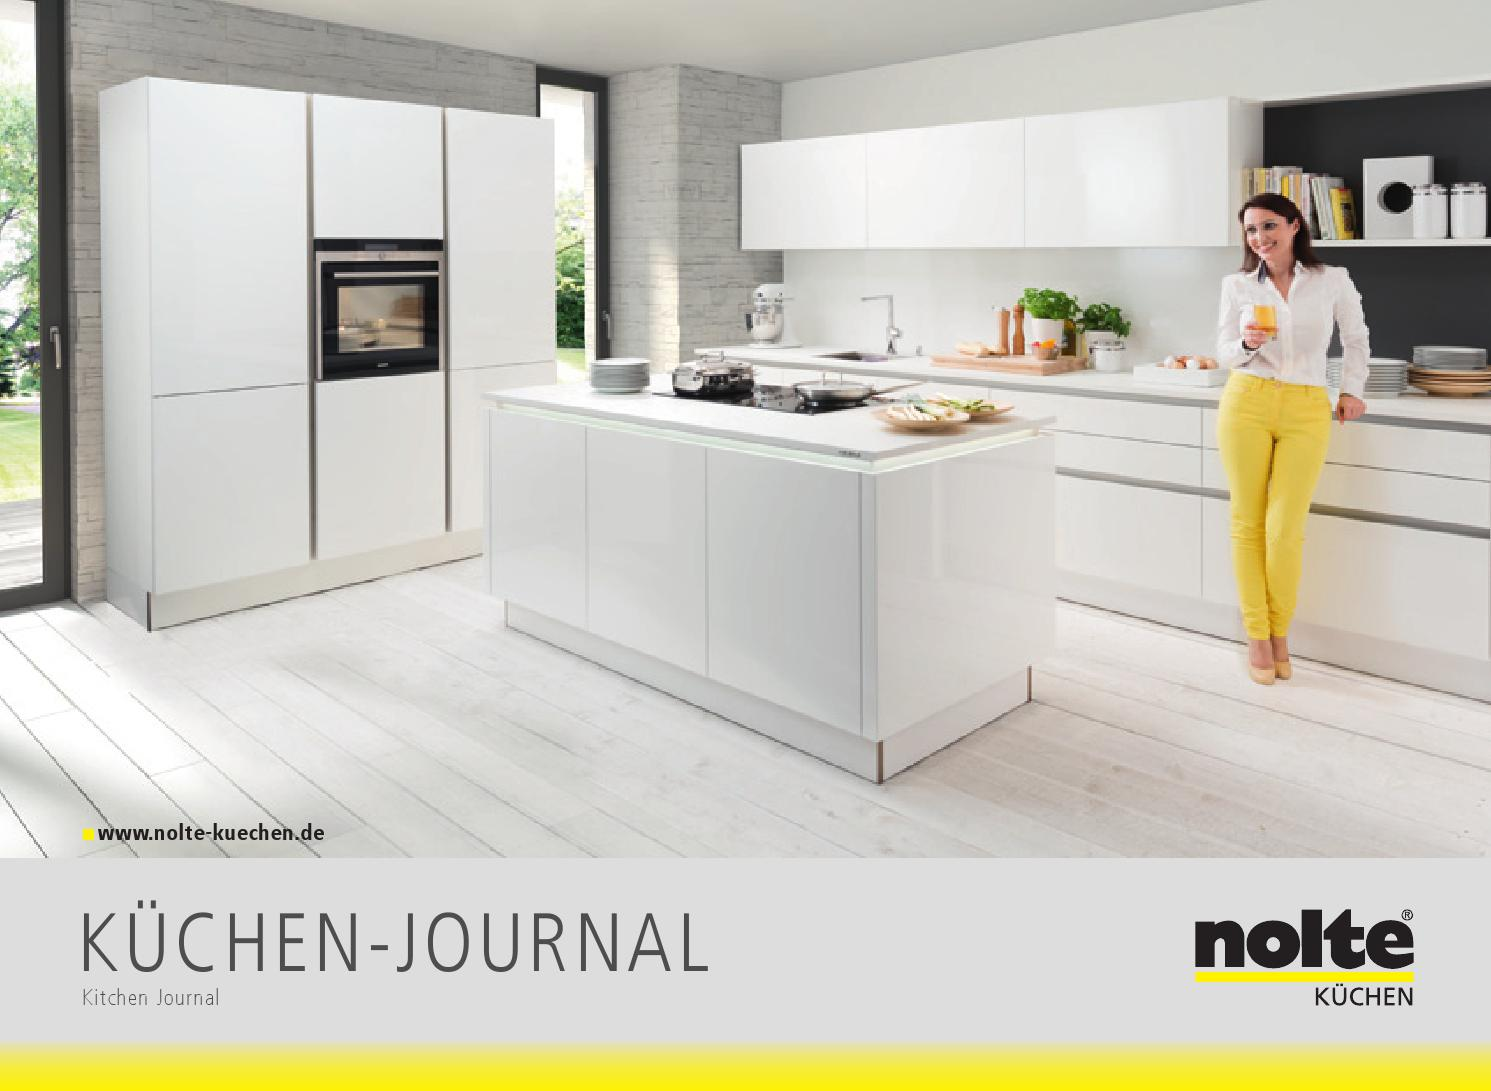 Nolte Küche 2015 Meyer Nolte Küchen Journal 2015 By Perspektive Werbeagentur Issuu